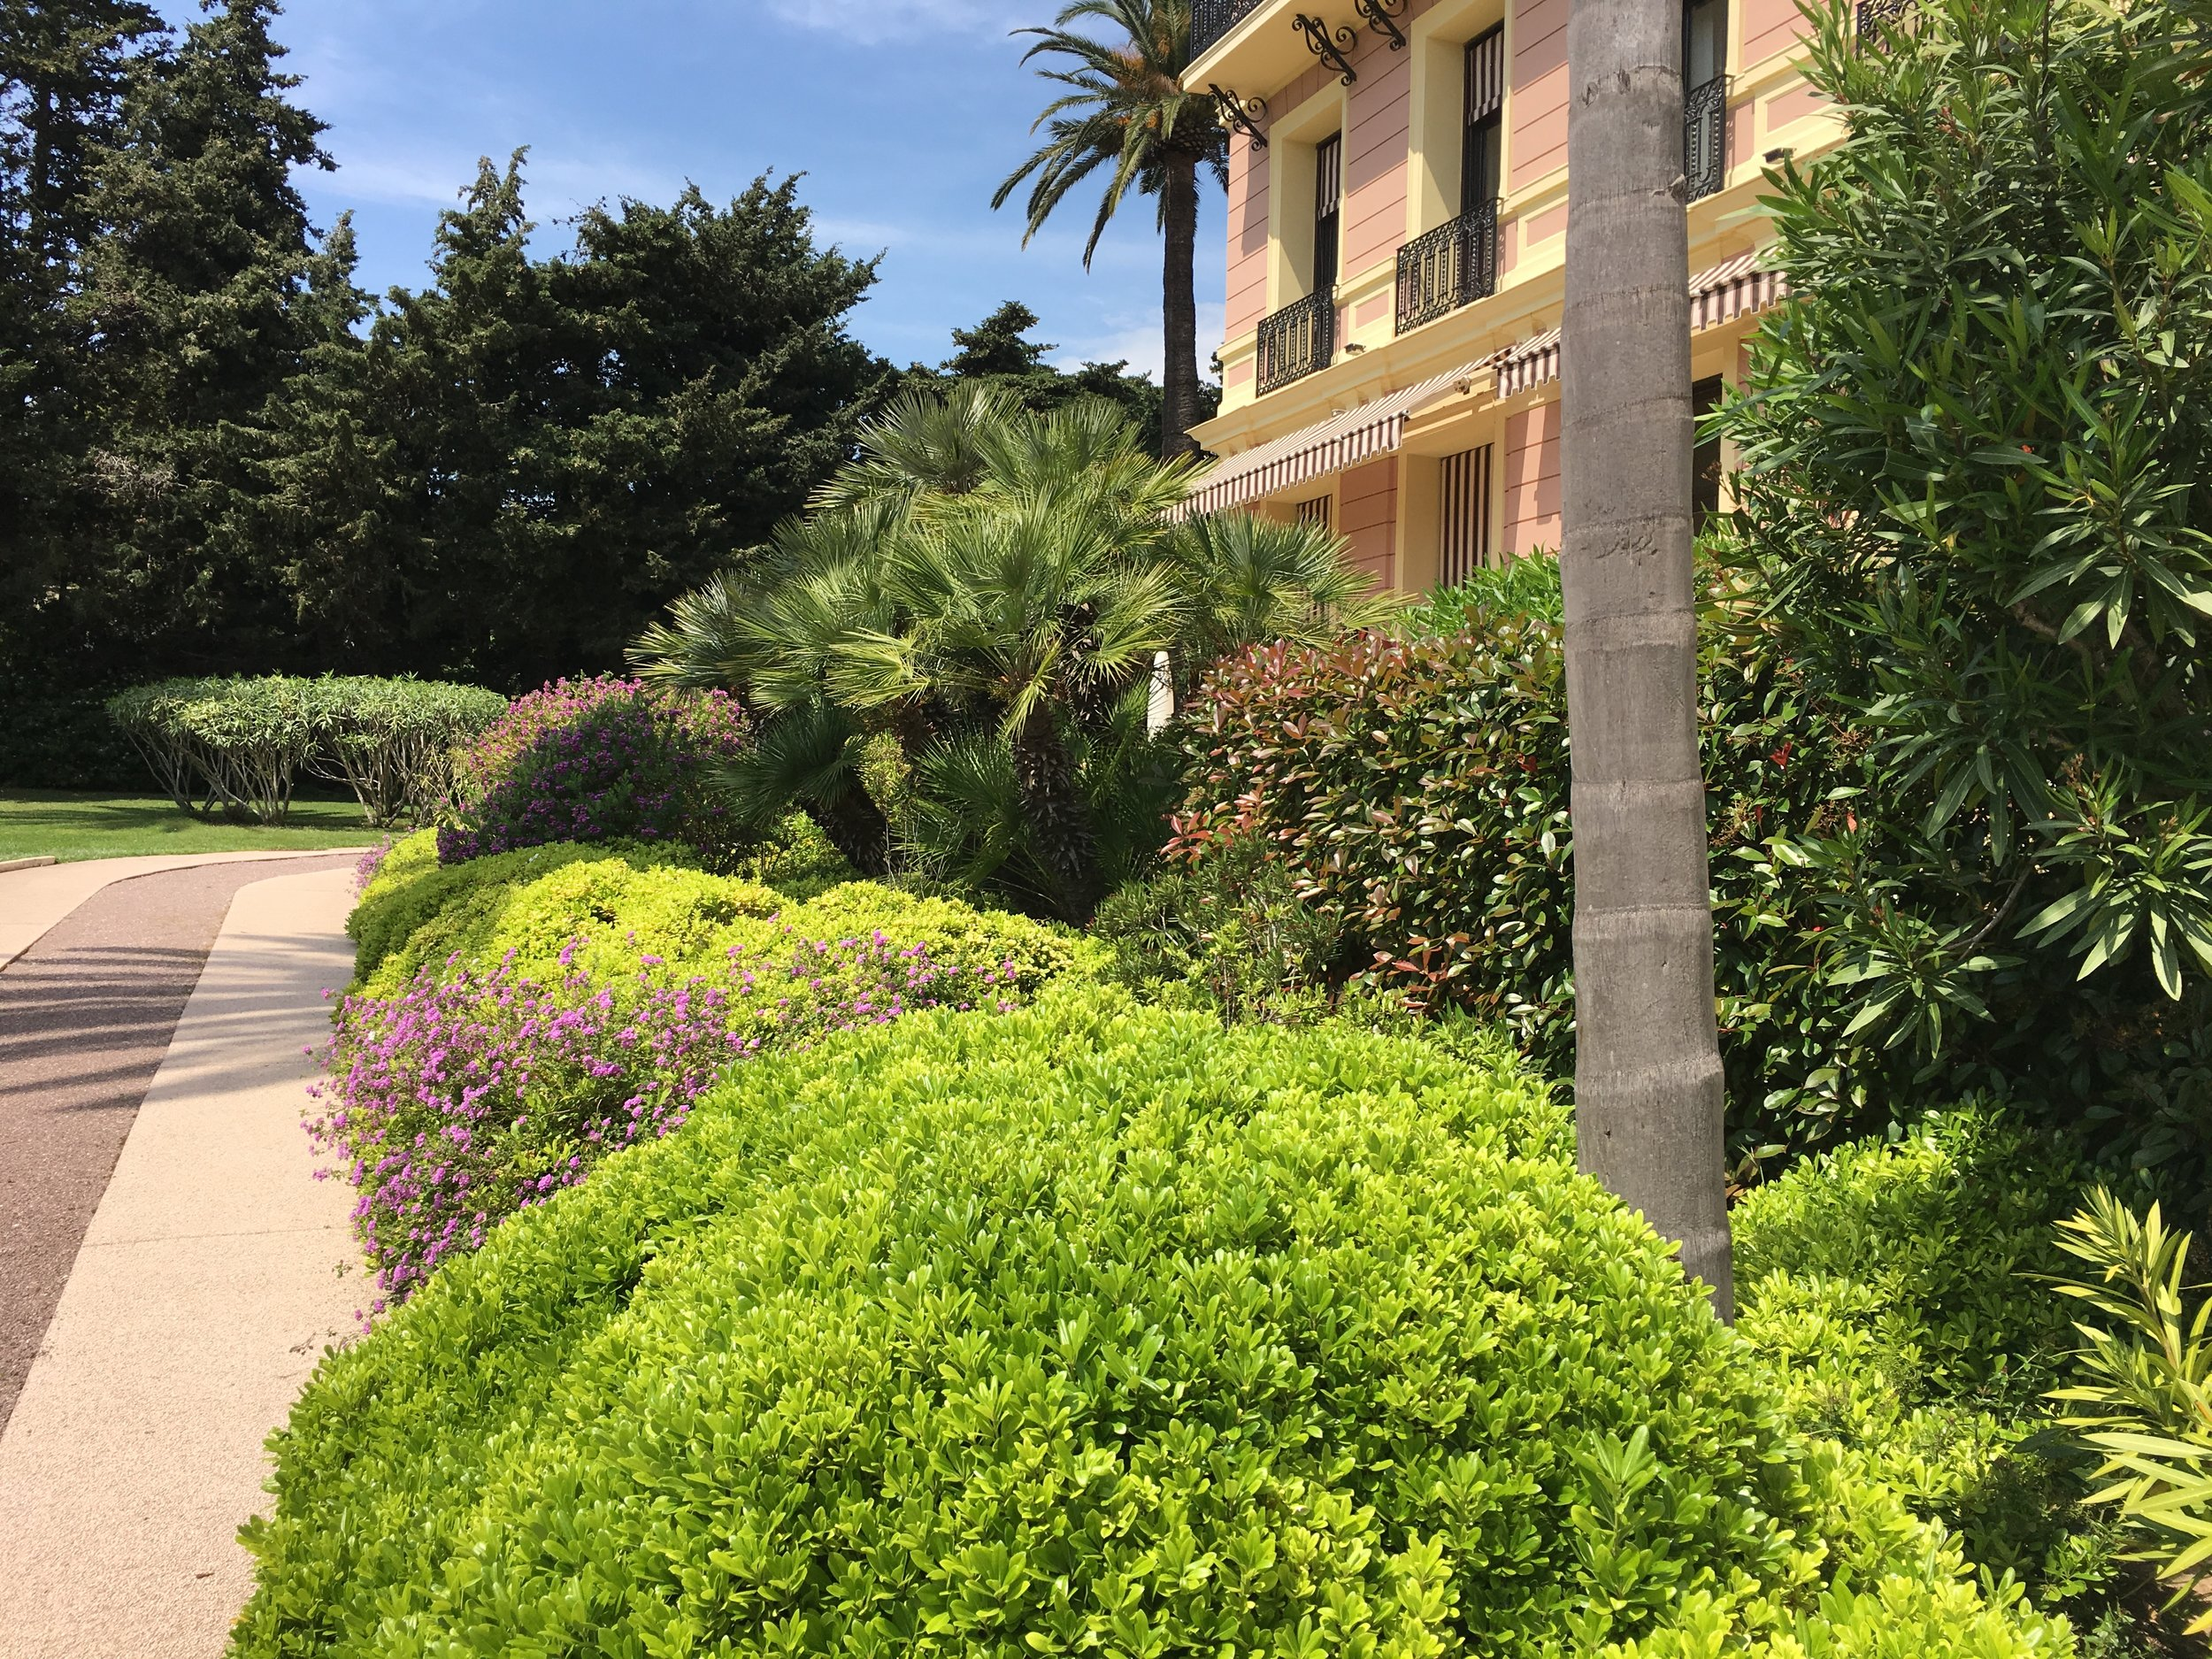 Hotel and gardens